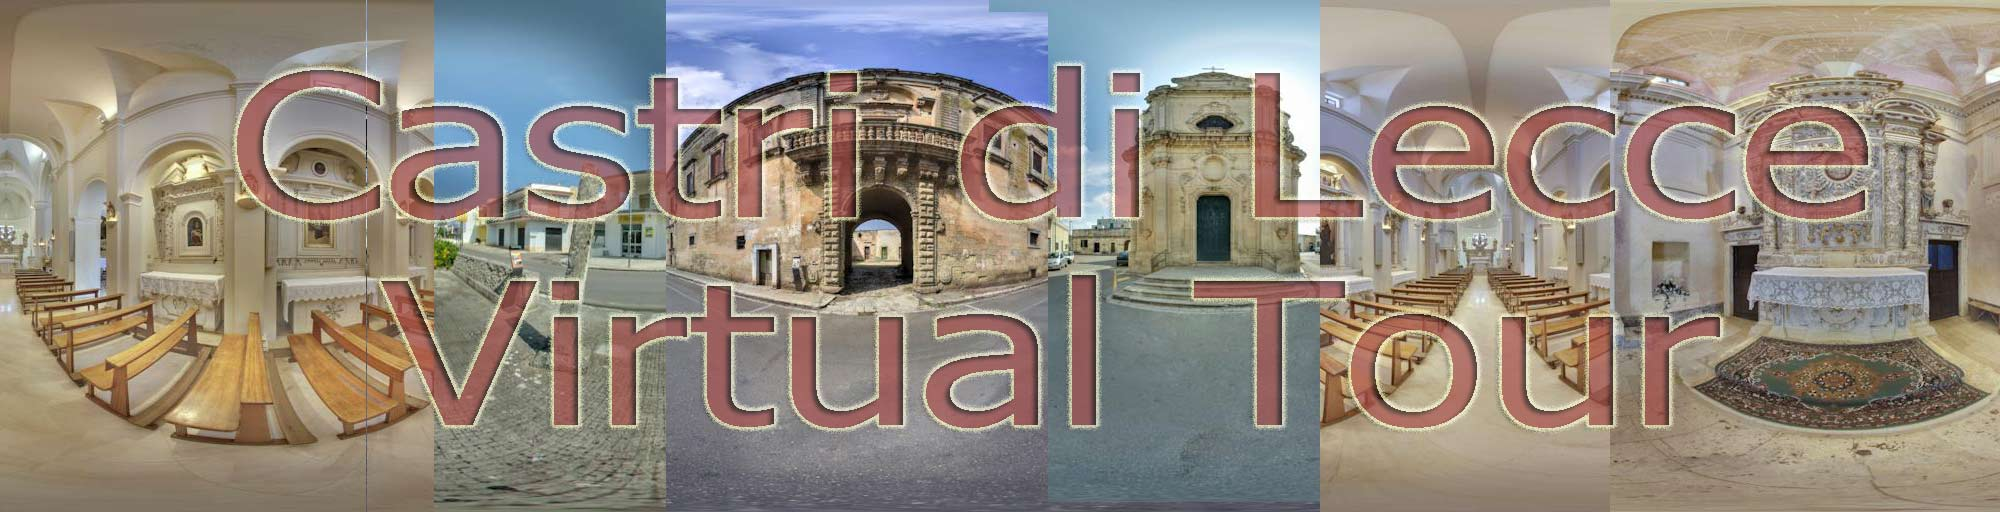 Castri di Lecce Virtual Tour